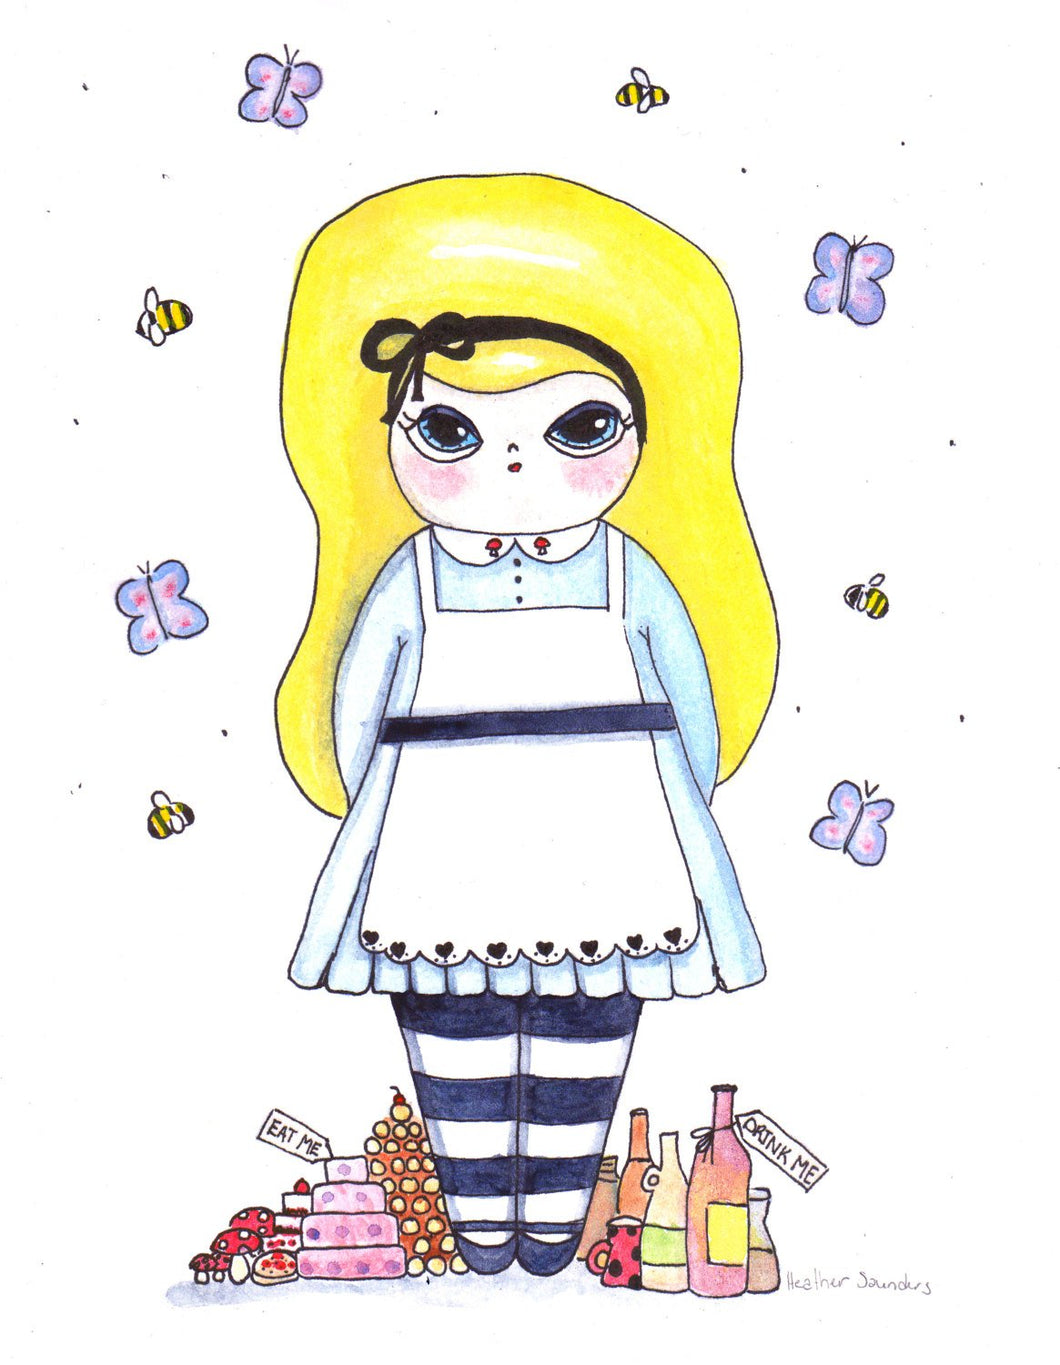 Alice in Wonderland Illustration Print - 8.5